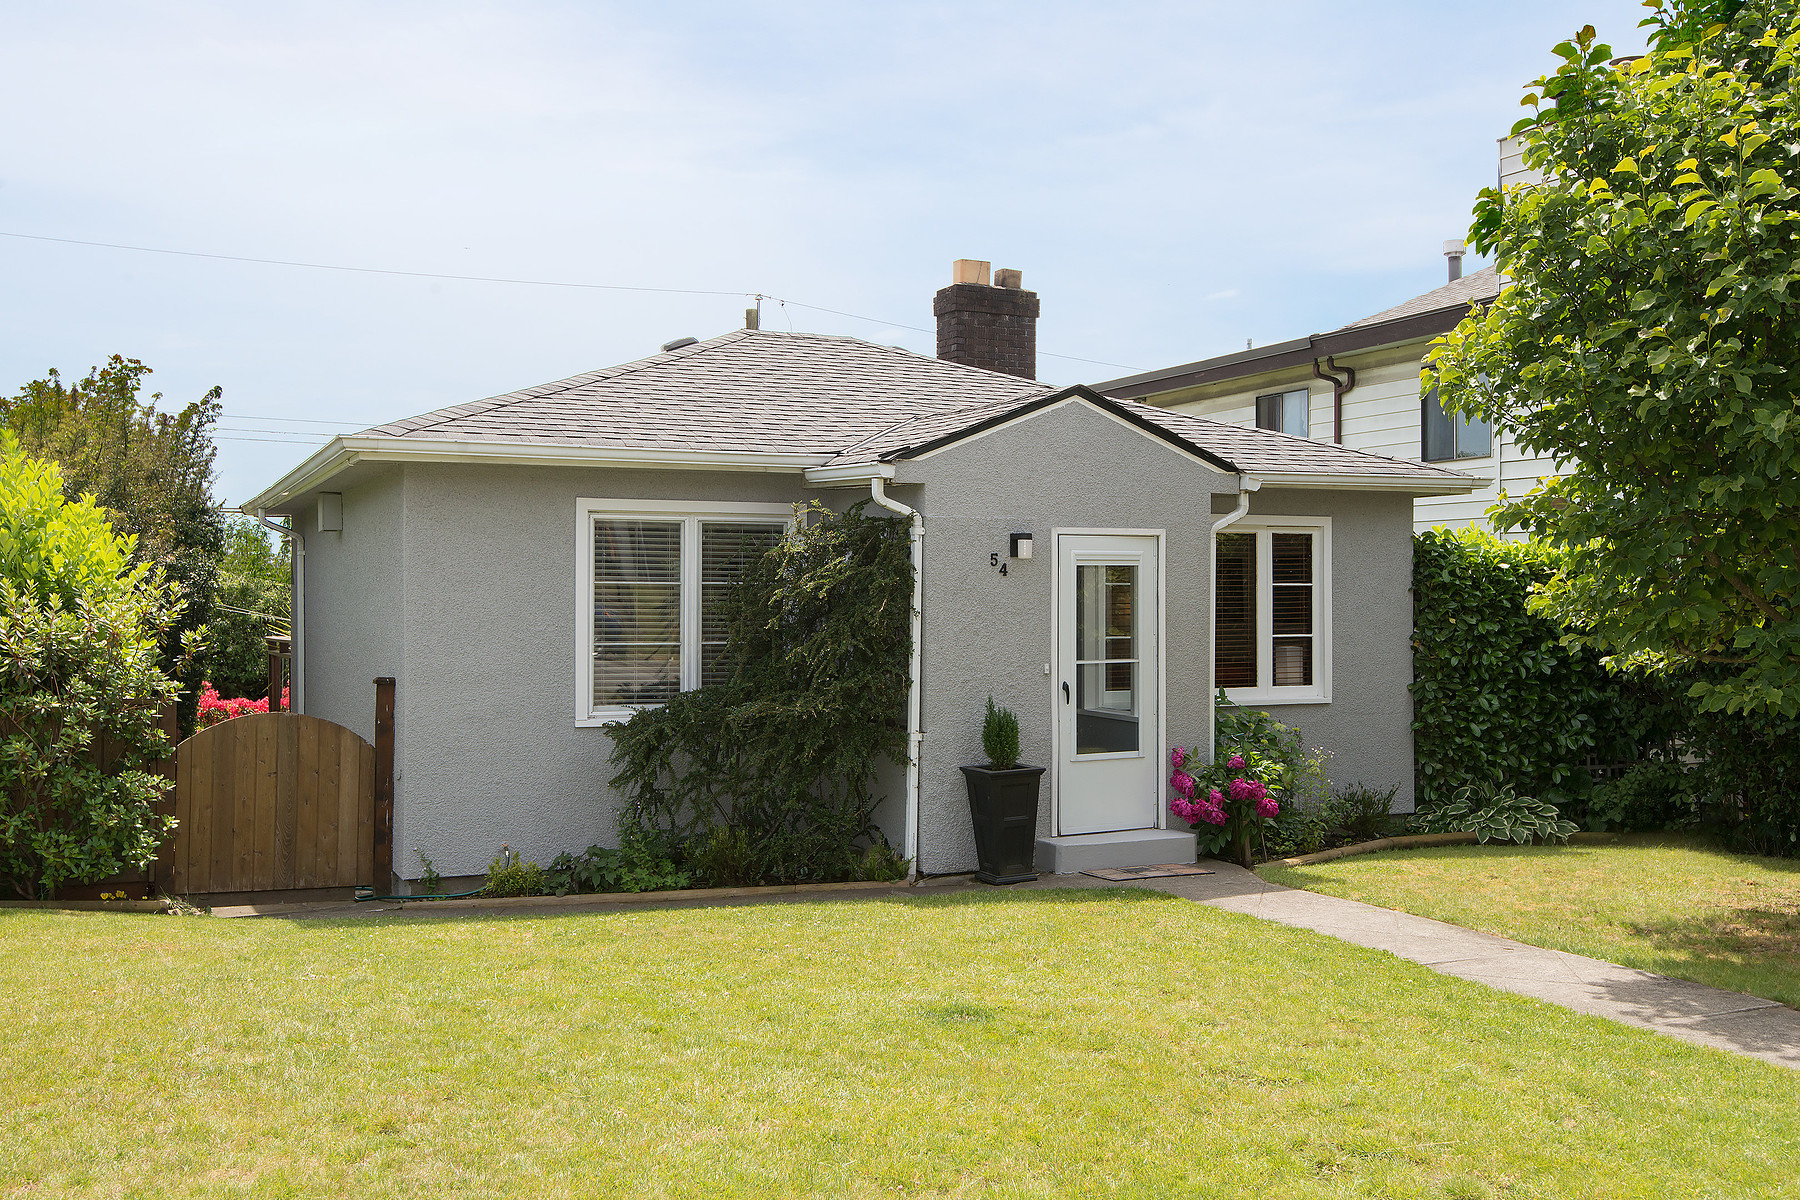 Single Family Home for Sale at Vancouver East, Greater Vancouver 50 E 60th Avenue Vancouver, British Columbia, V5X 1Z6 Canada